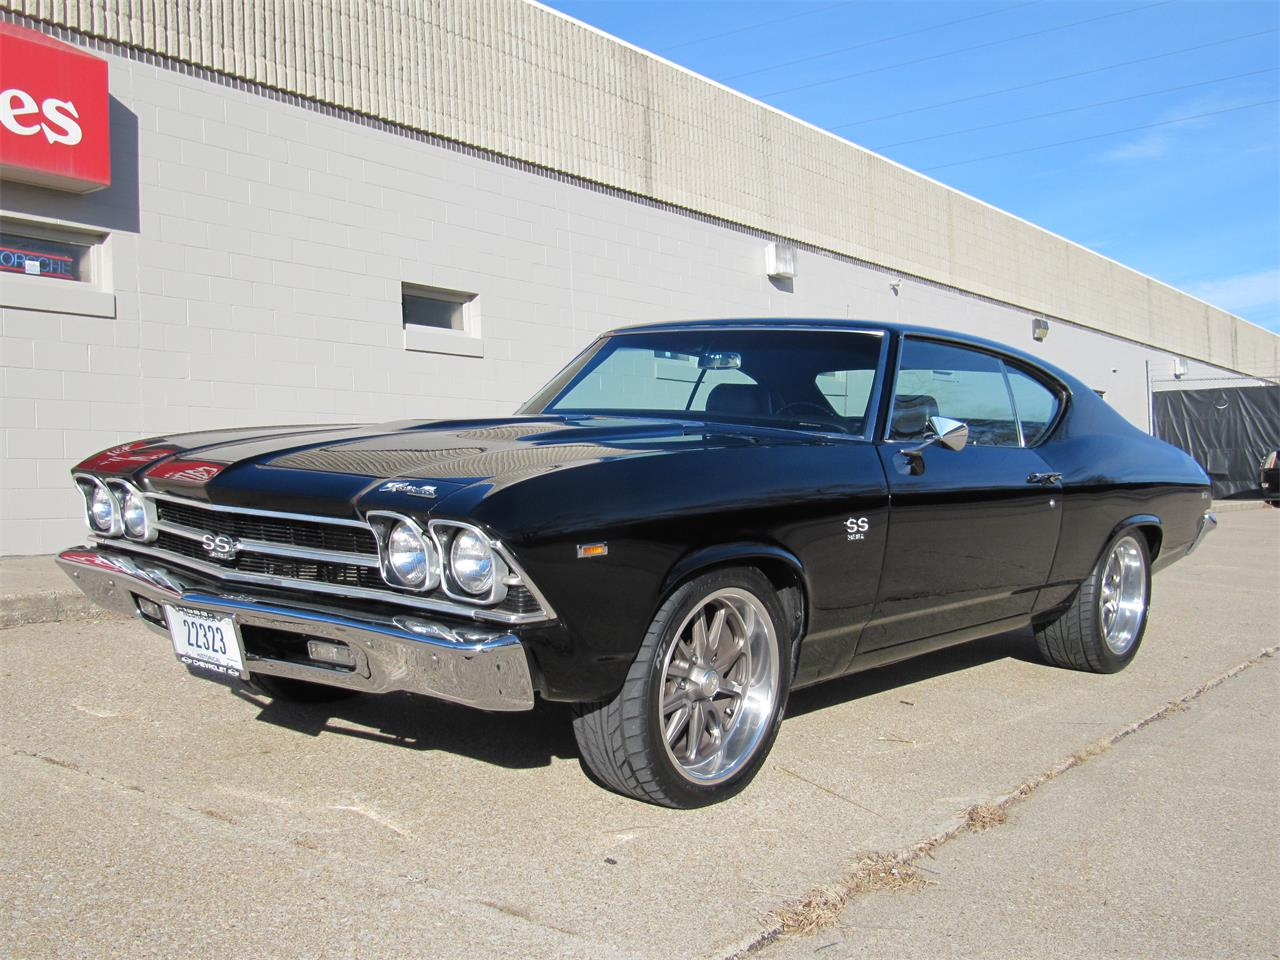 1969 Chevrolet Chevelle Malibu SS (CC-1300125) for sale in Omaha, Nebraska